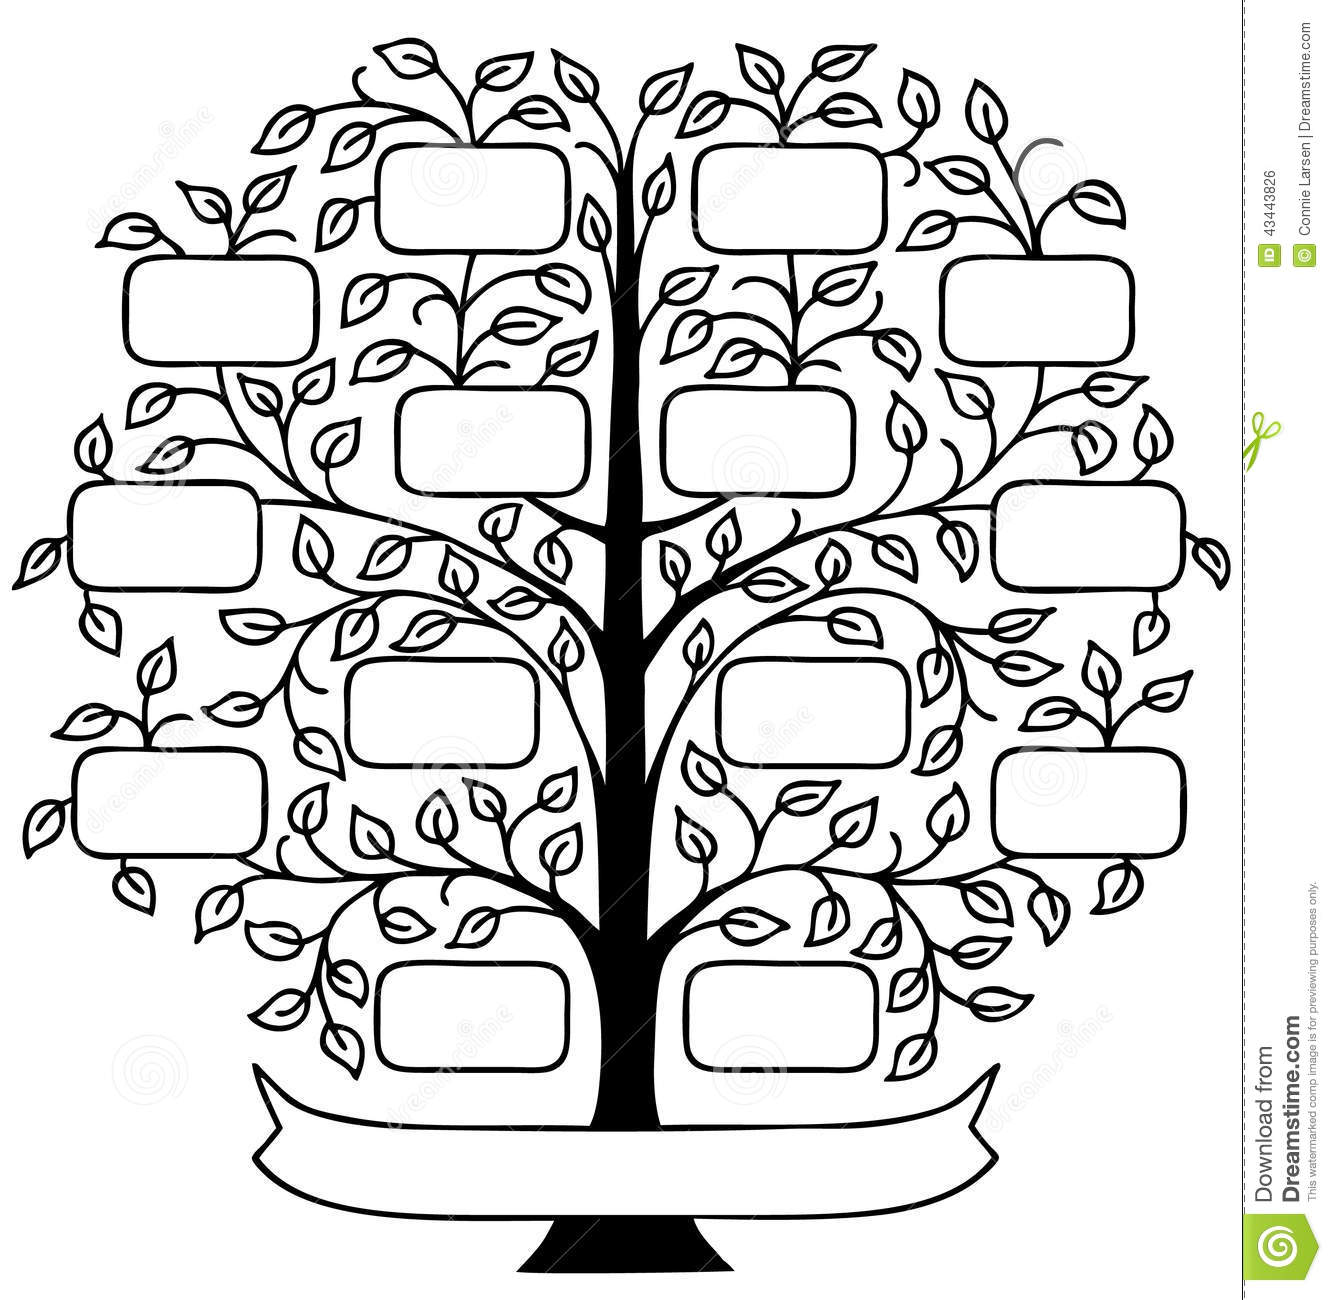 draw a family tree template - wall decal handcut designs chicago web design